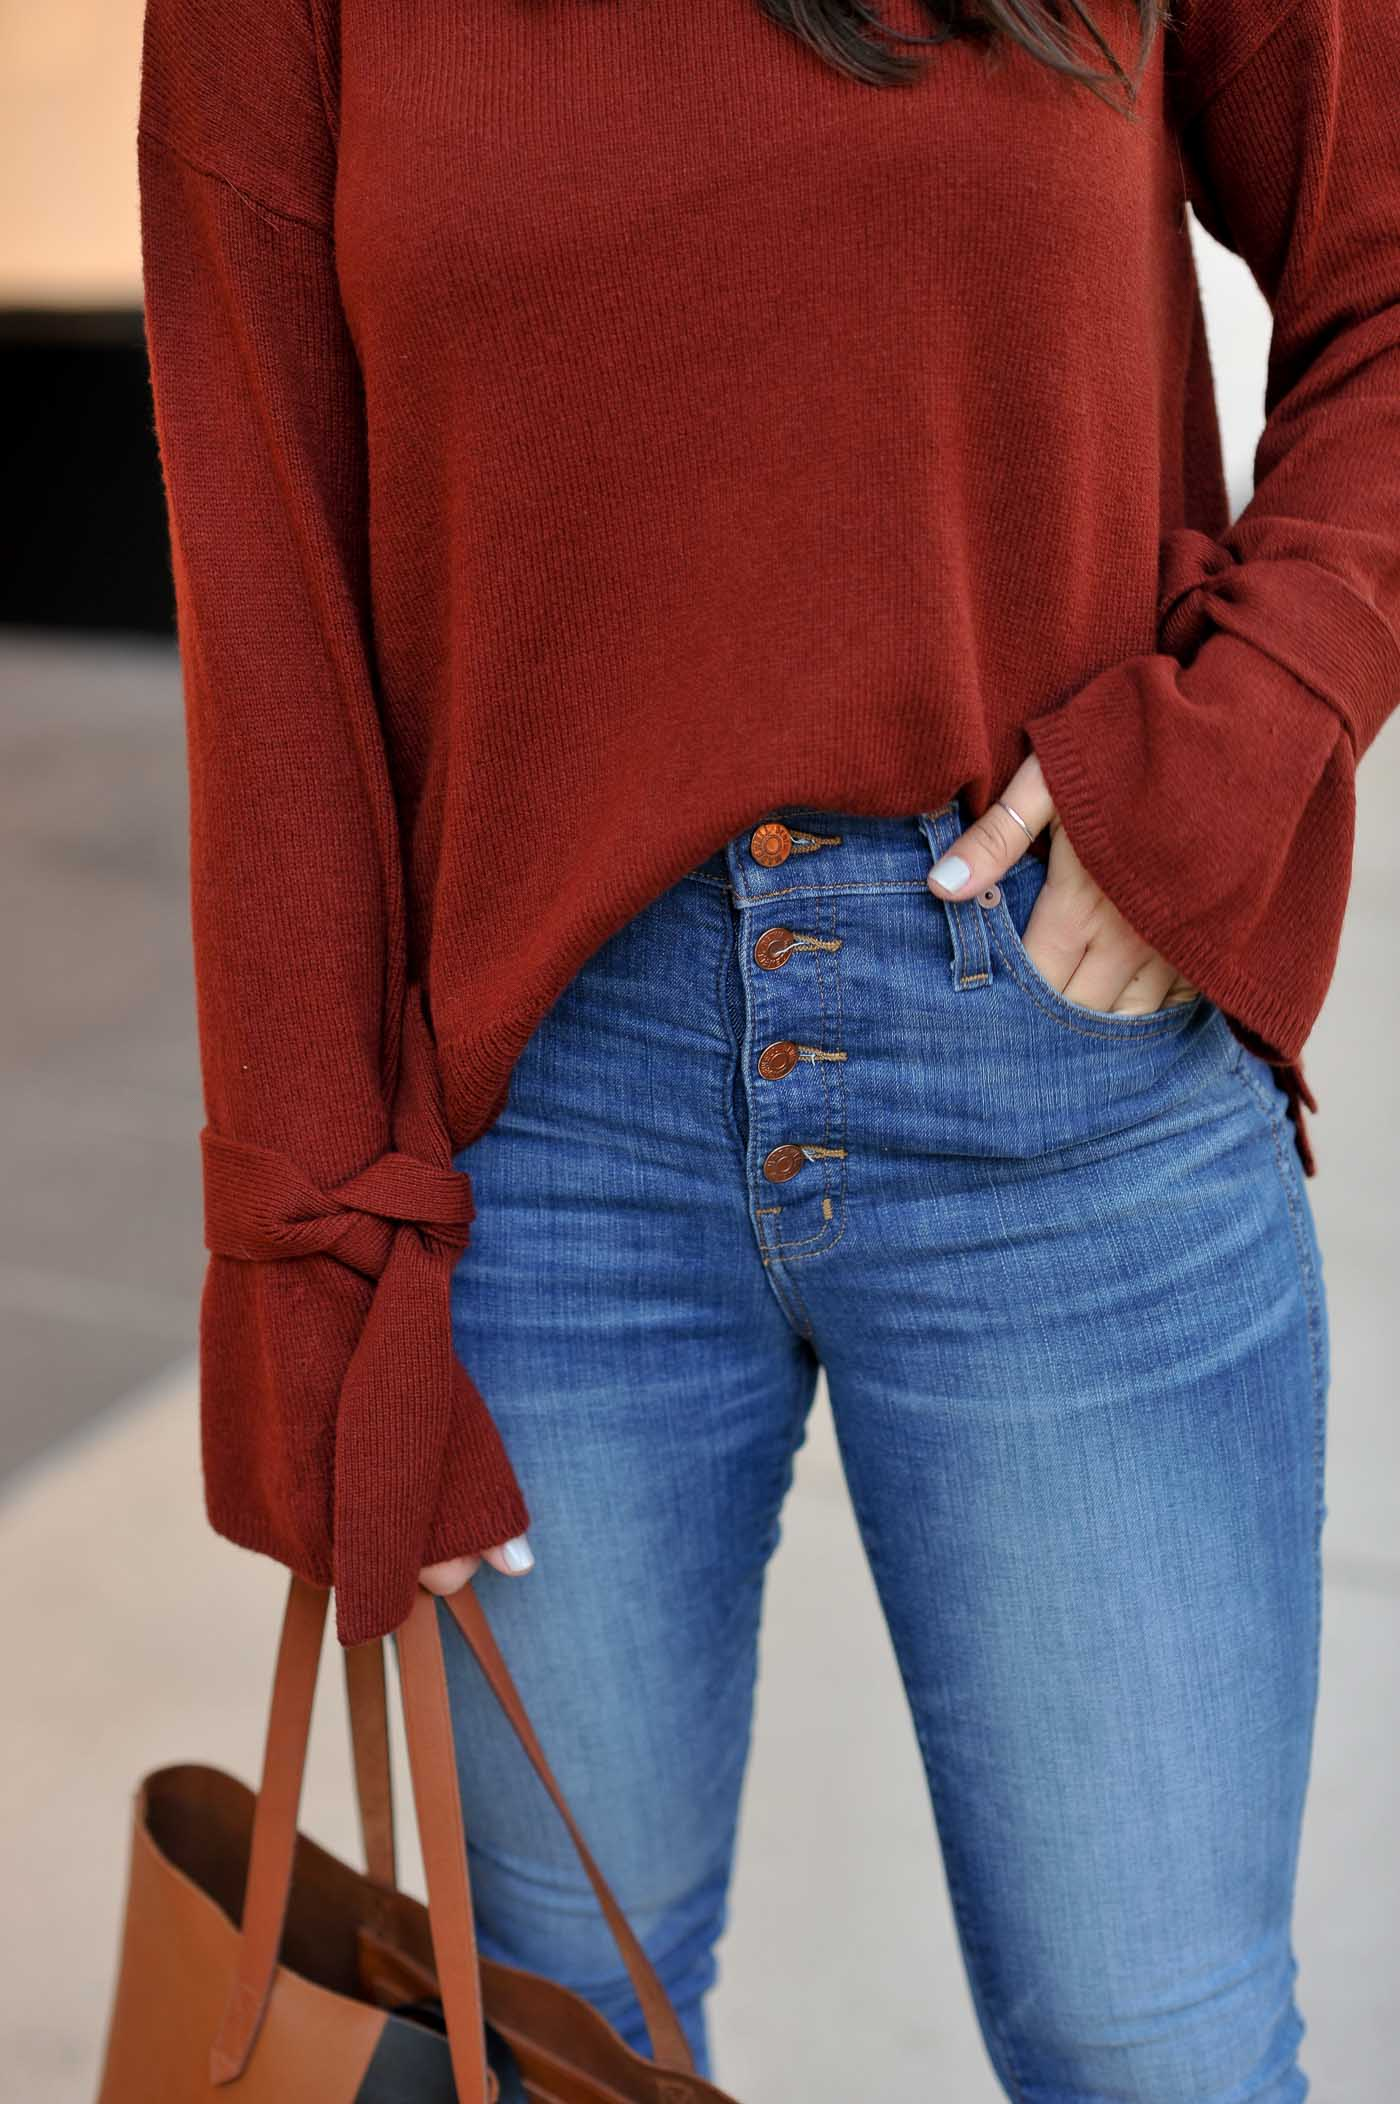 Madewell Tie Sweater, affordable fall outfits, sweaters for fall, casual fall outfits, high rise denim, button up jeans - My Style Vita @mystylevita